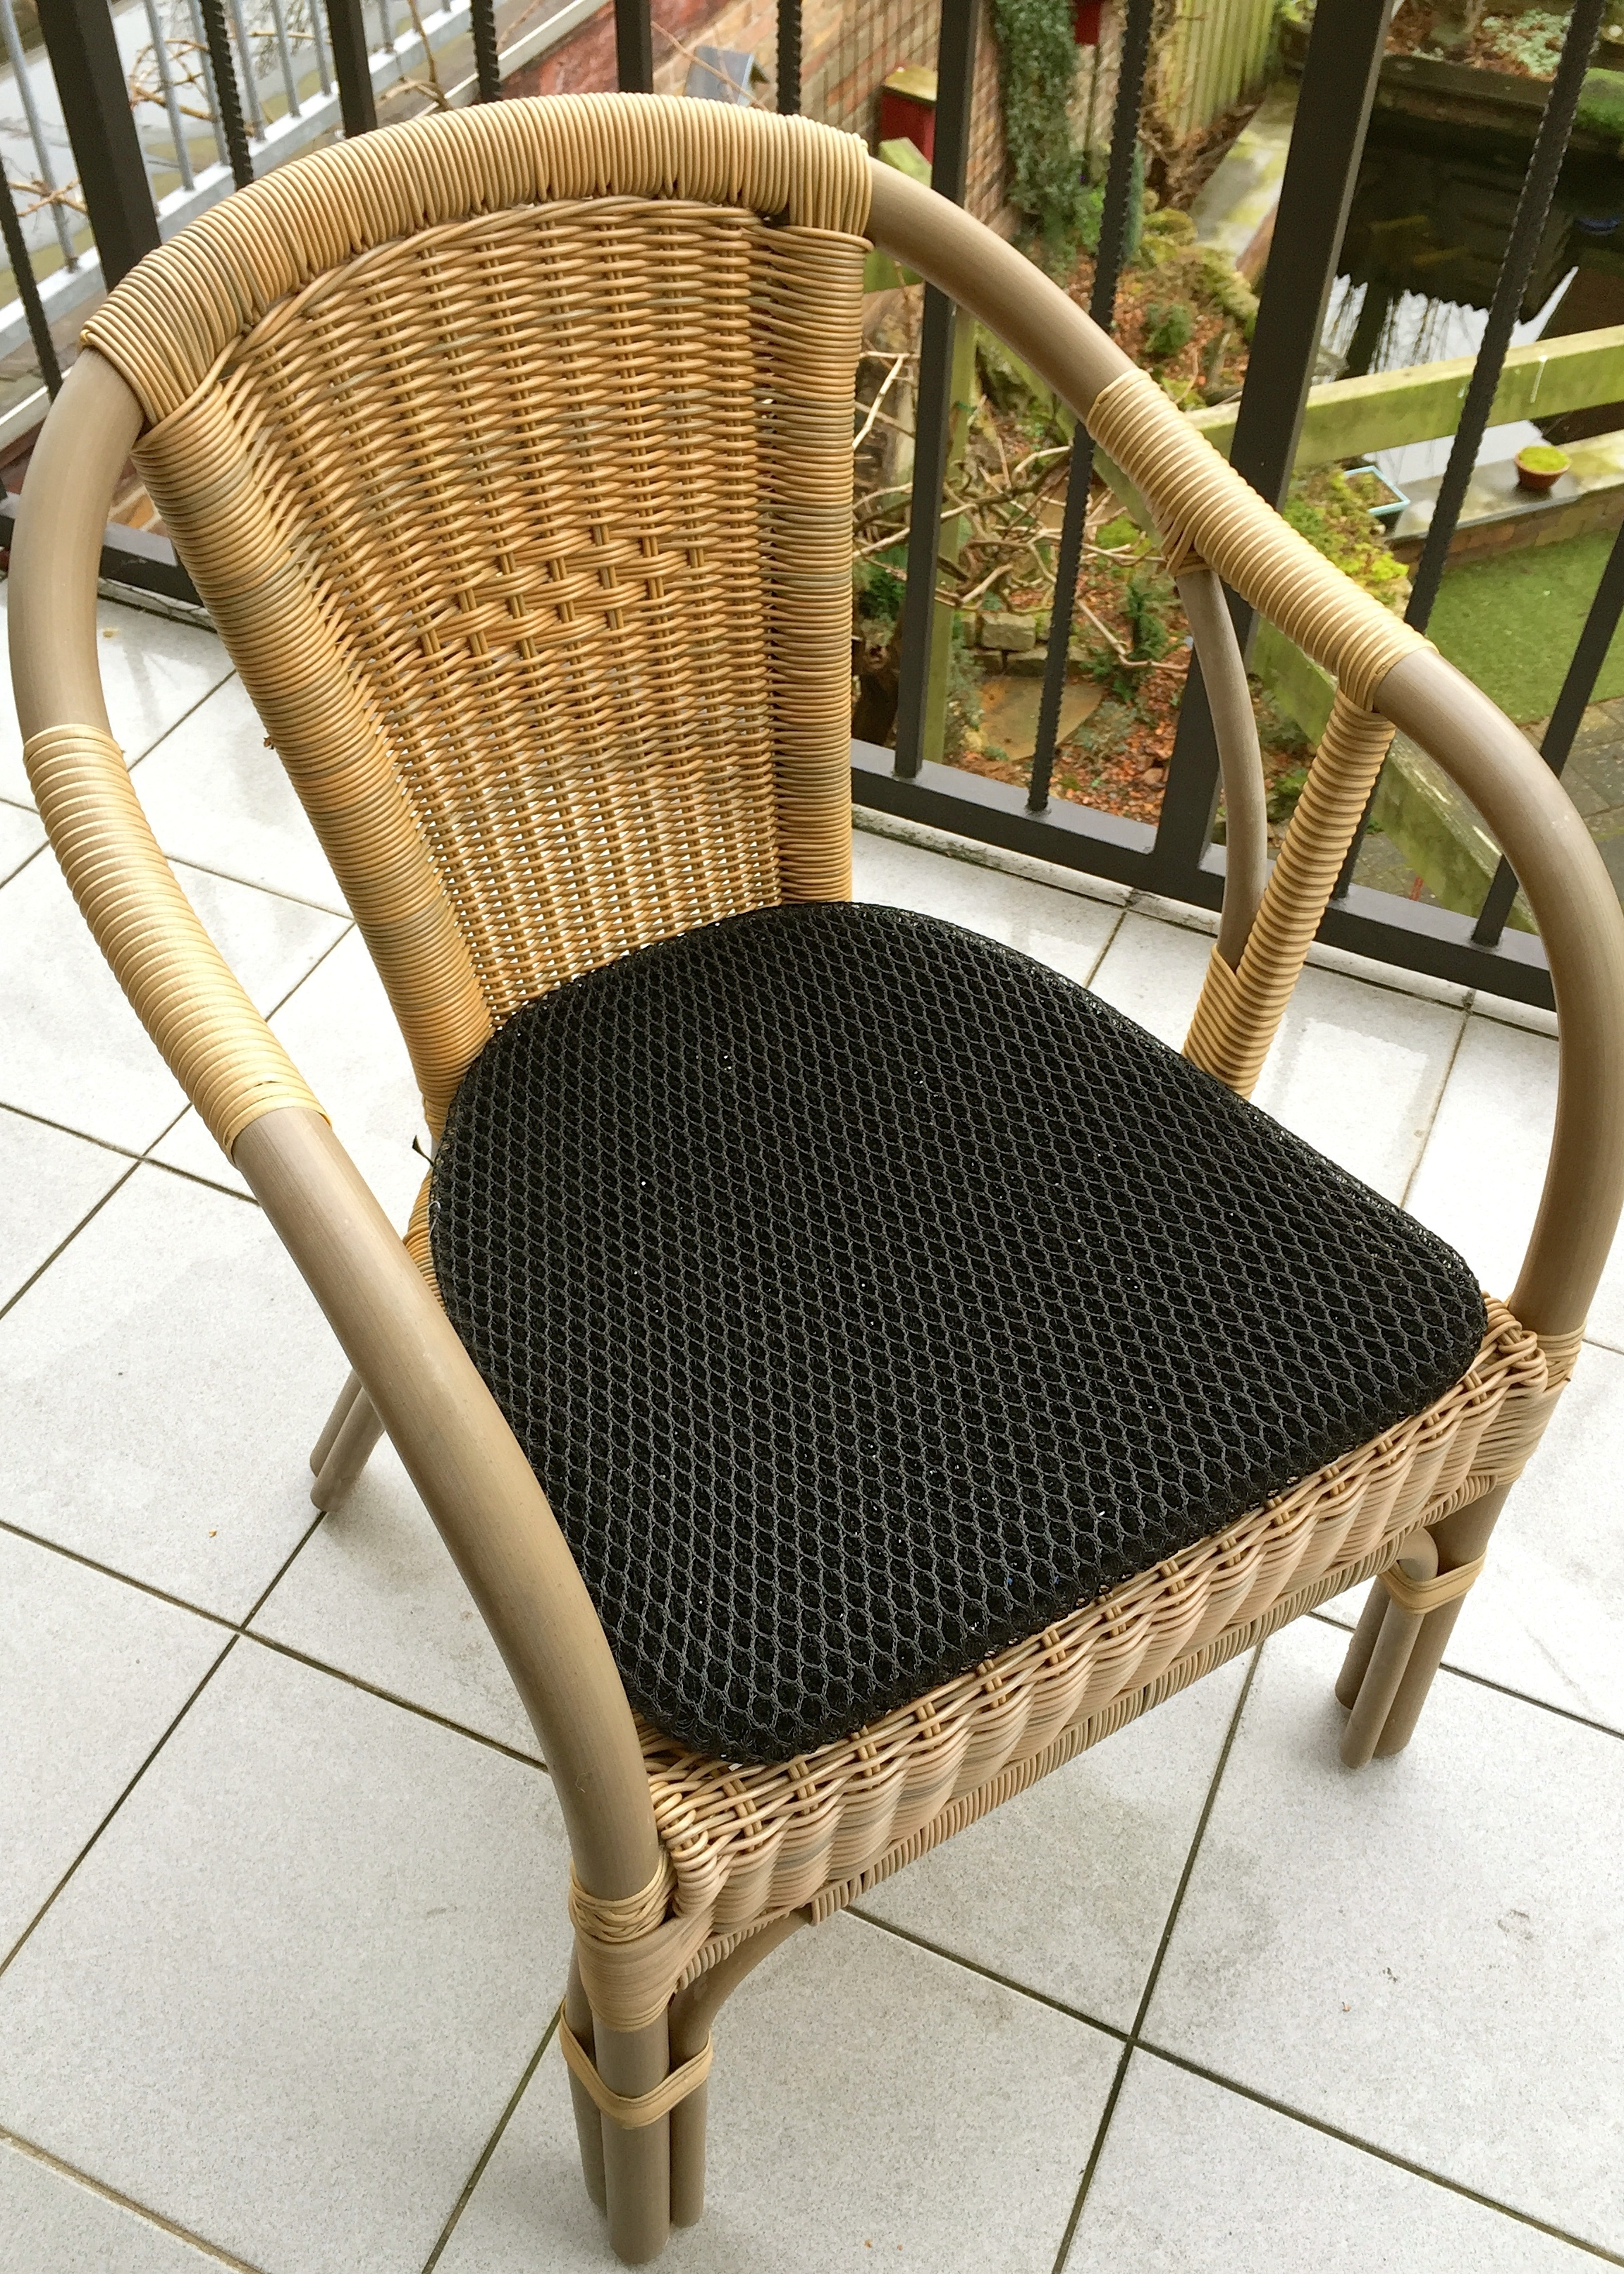 Ventisit Terrace chairs